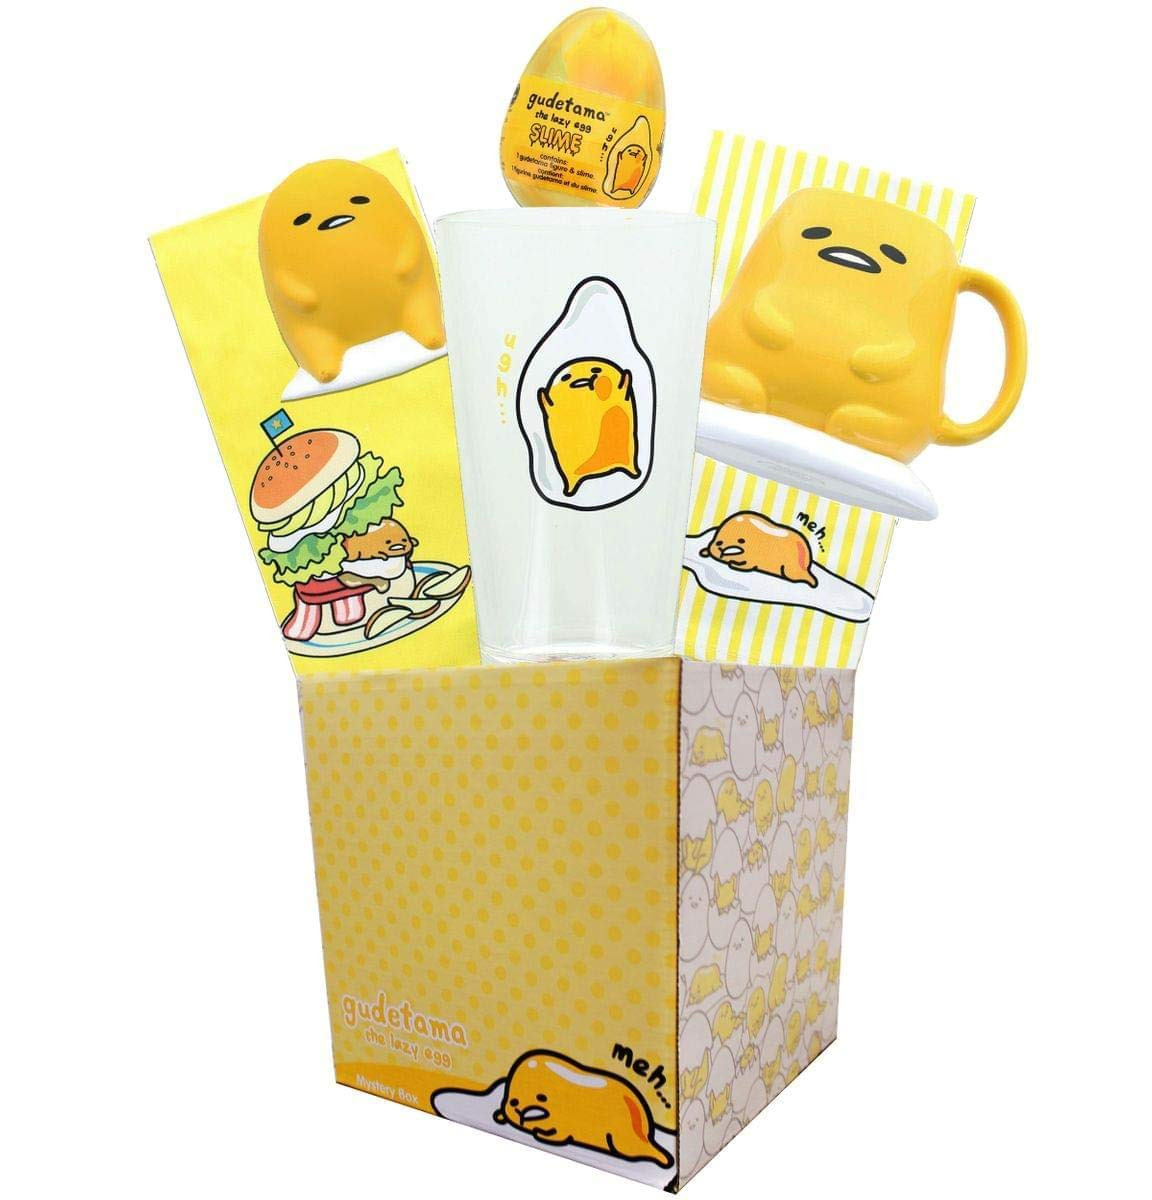 Gudetama Collectibles | Gudetama the Lazy Egg LookSee Collector's Box